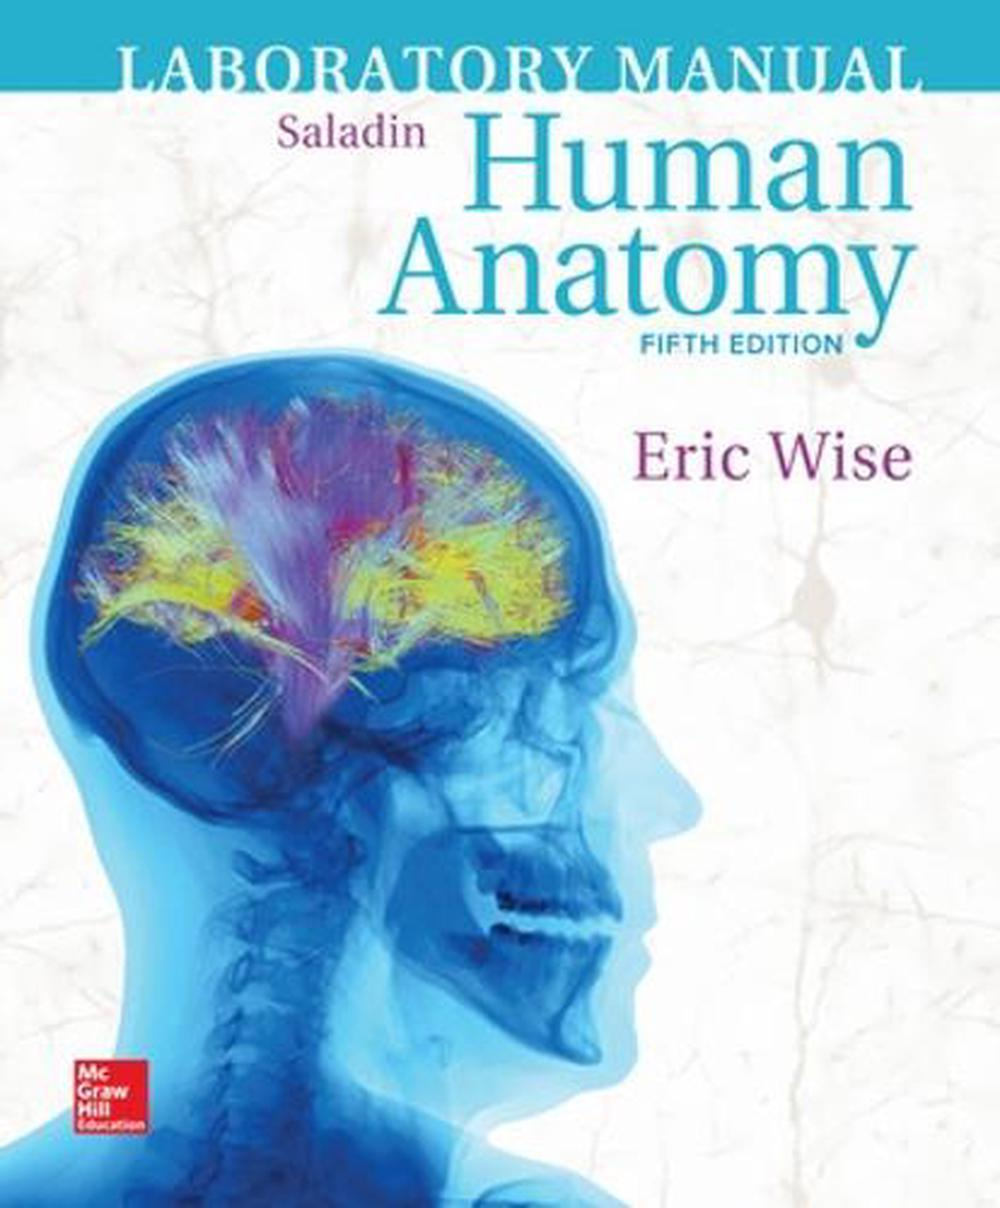 Laboratory Manual for Human Anatomy. by Kenneth Saladin, Eric Wise